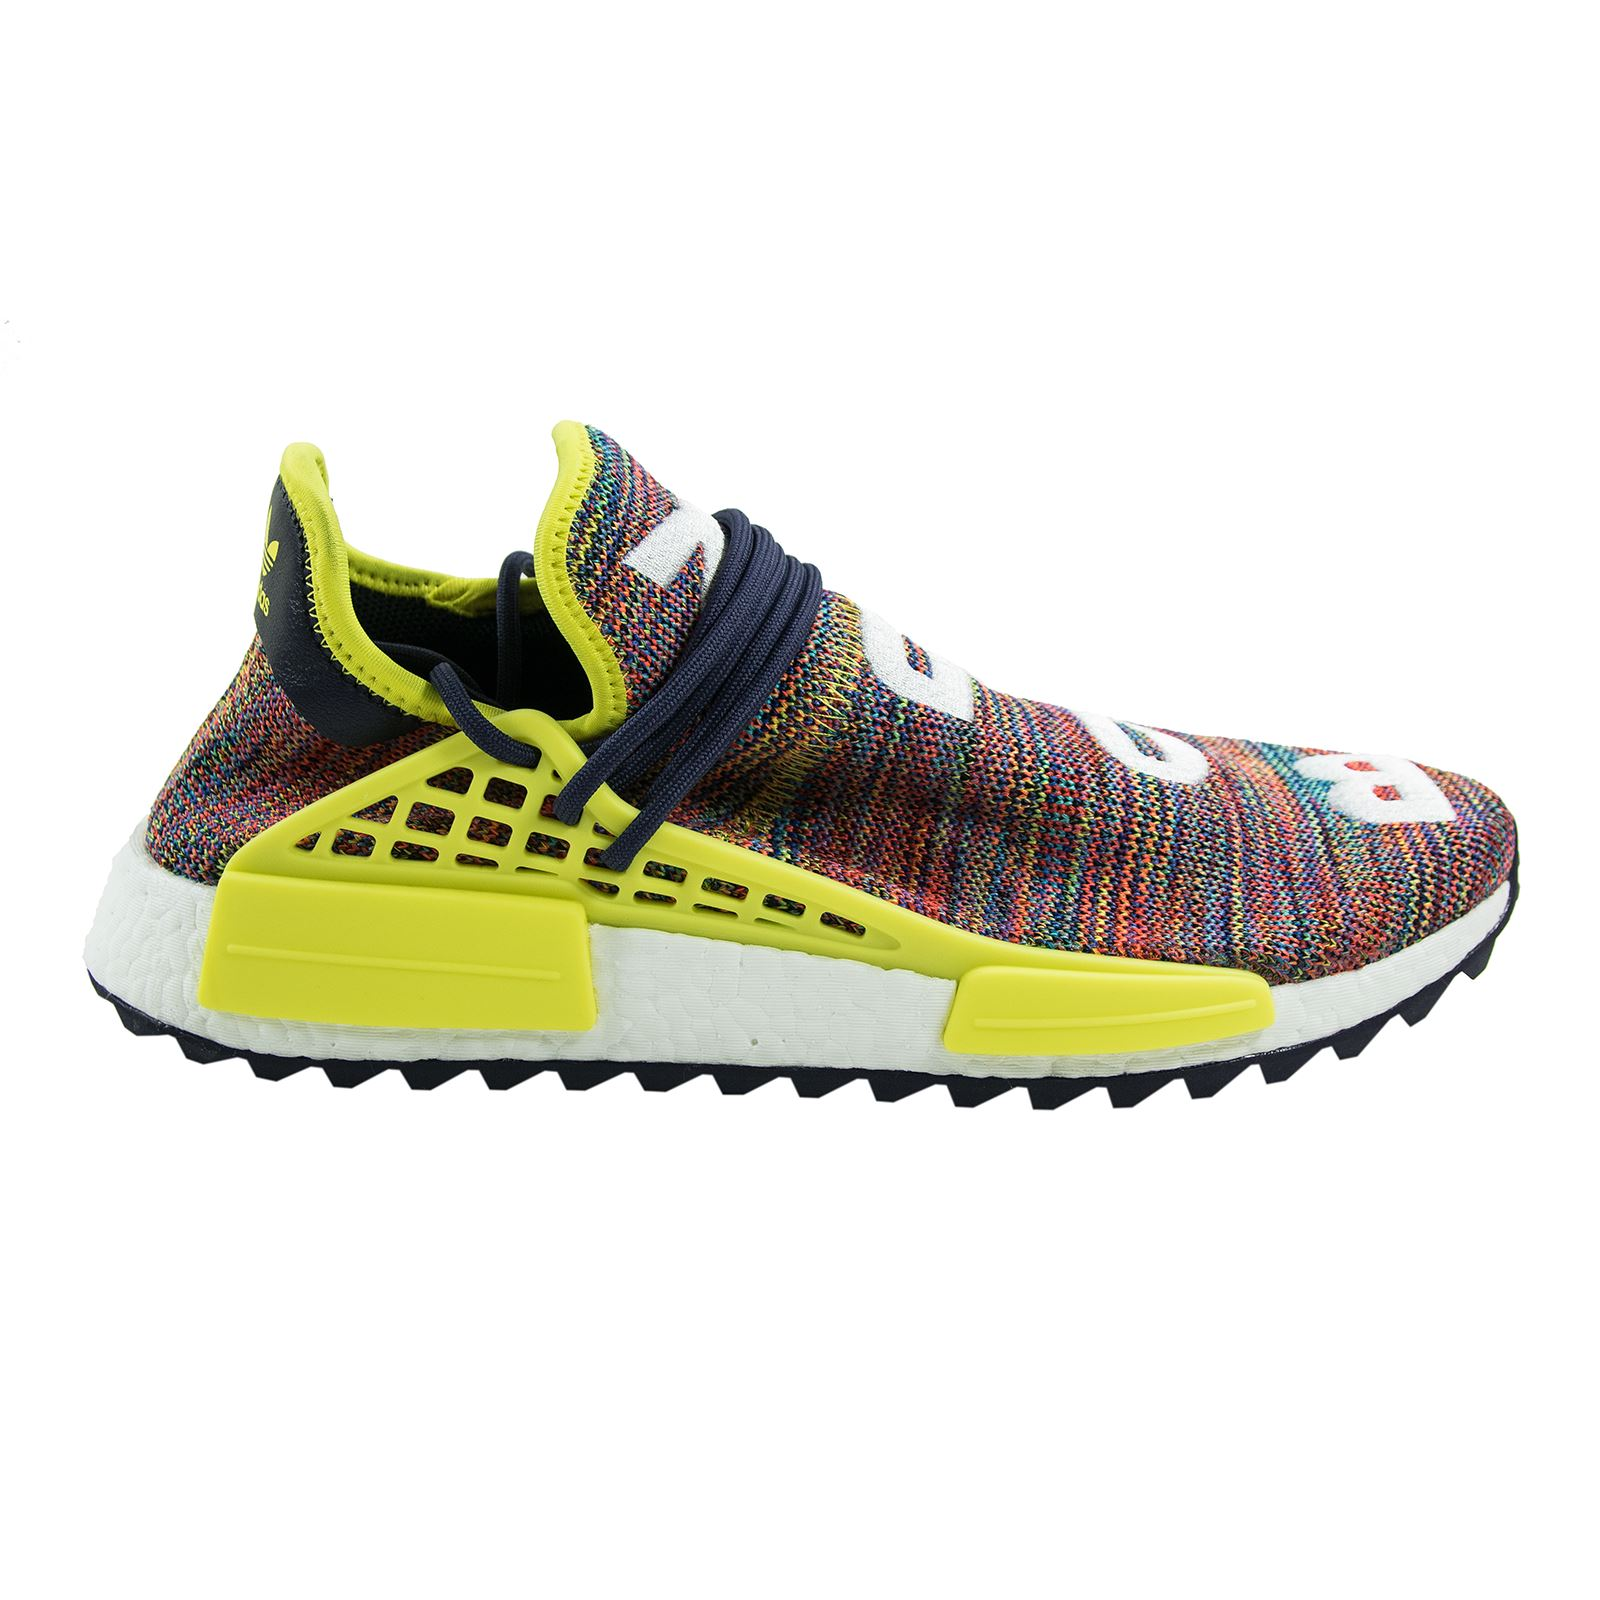 2c823a94970e1 Details about NIB Adidas Pharrell Williams Human Race NMD TR AC7360  Multi-Color Noble Ink 12